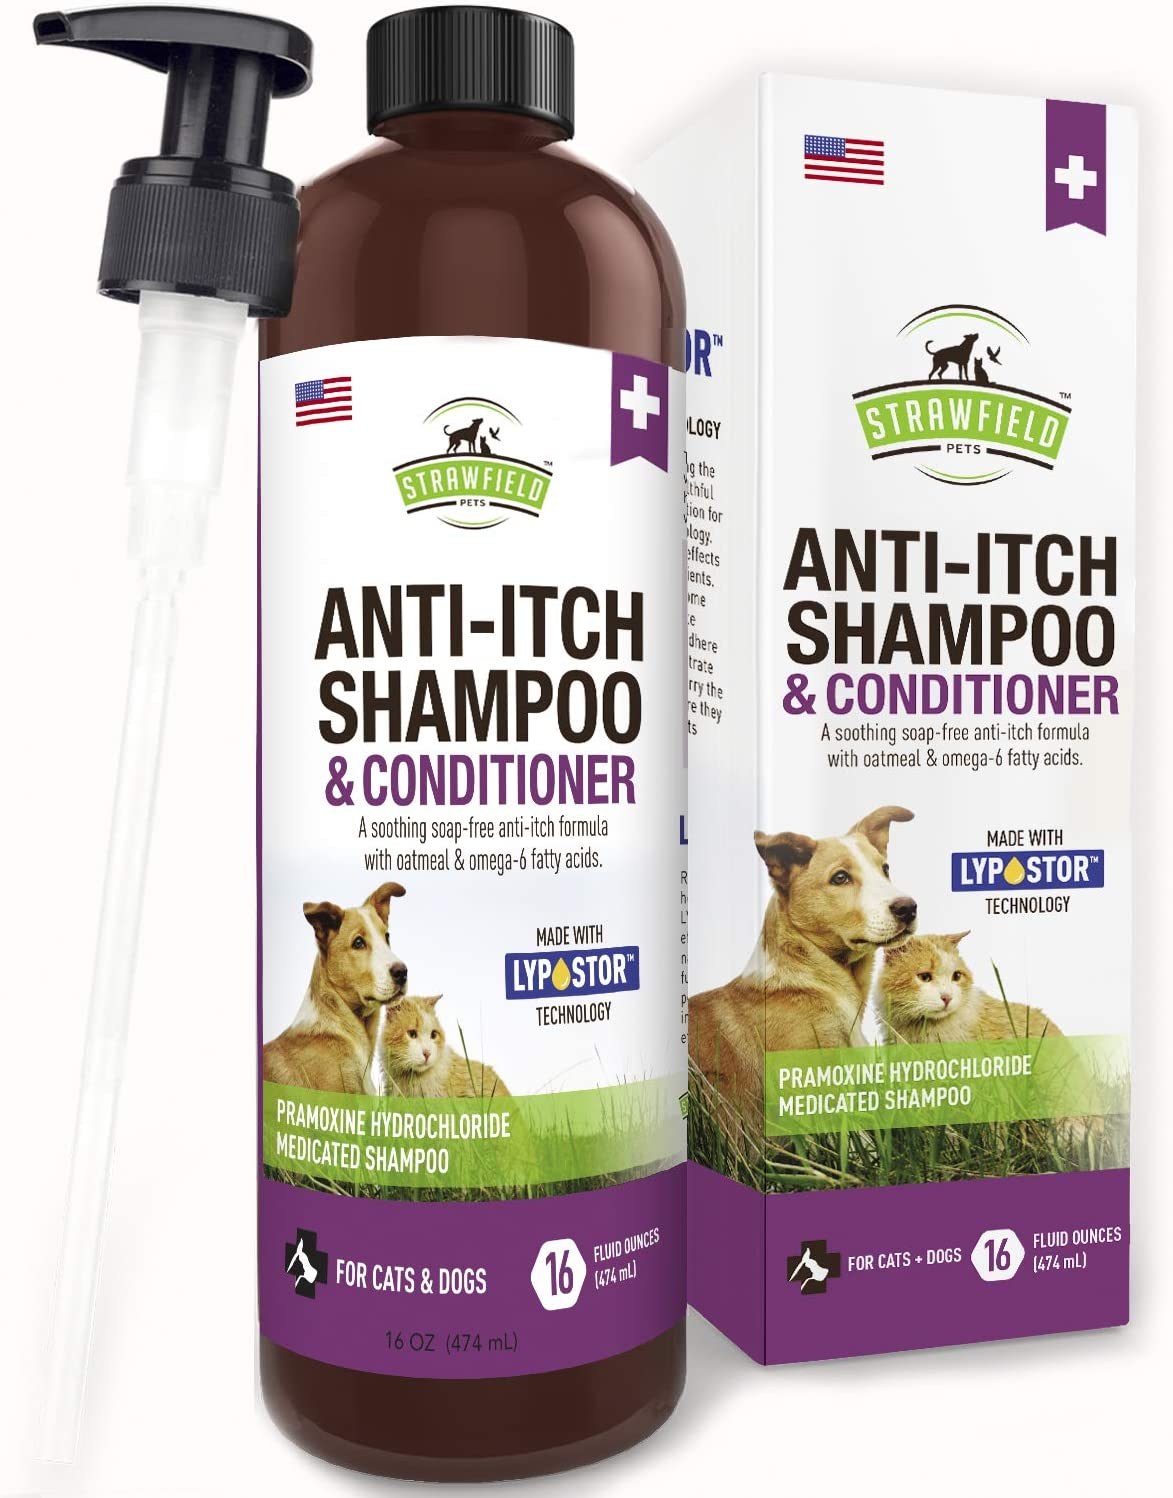 Amazon Com Anti Itch Dog Shampoo For Dry Itchy Skin 16 Oz Medicated Hypoallergenic Colloidal Oatmeal Dog Shampoo And Conditioner For Allergies And Itching Sensitive Skin Allergy Relief Treatment Usa Pet Supplies